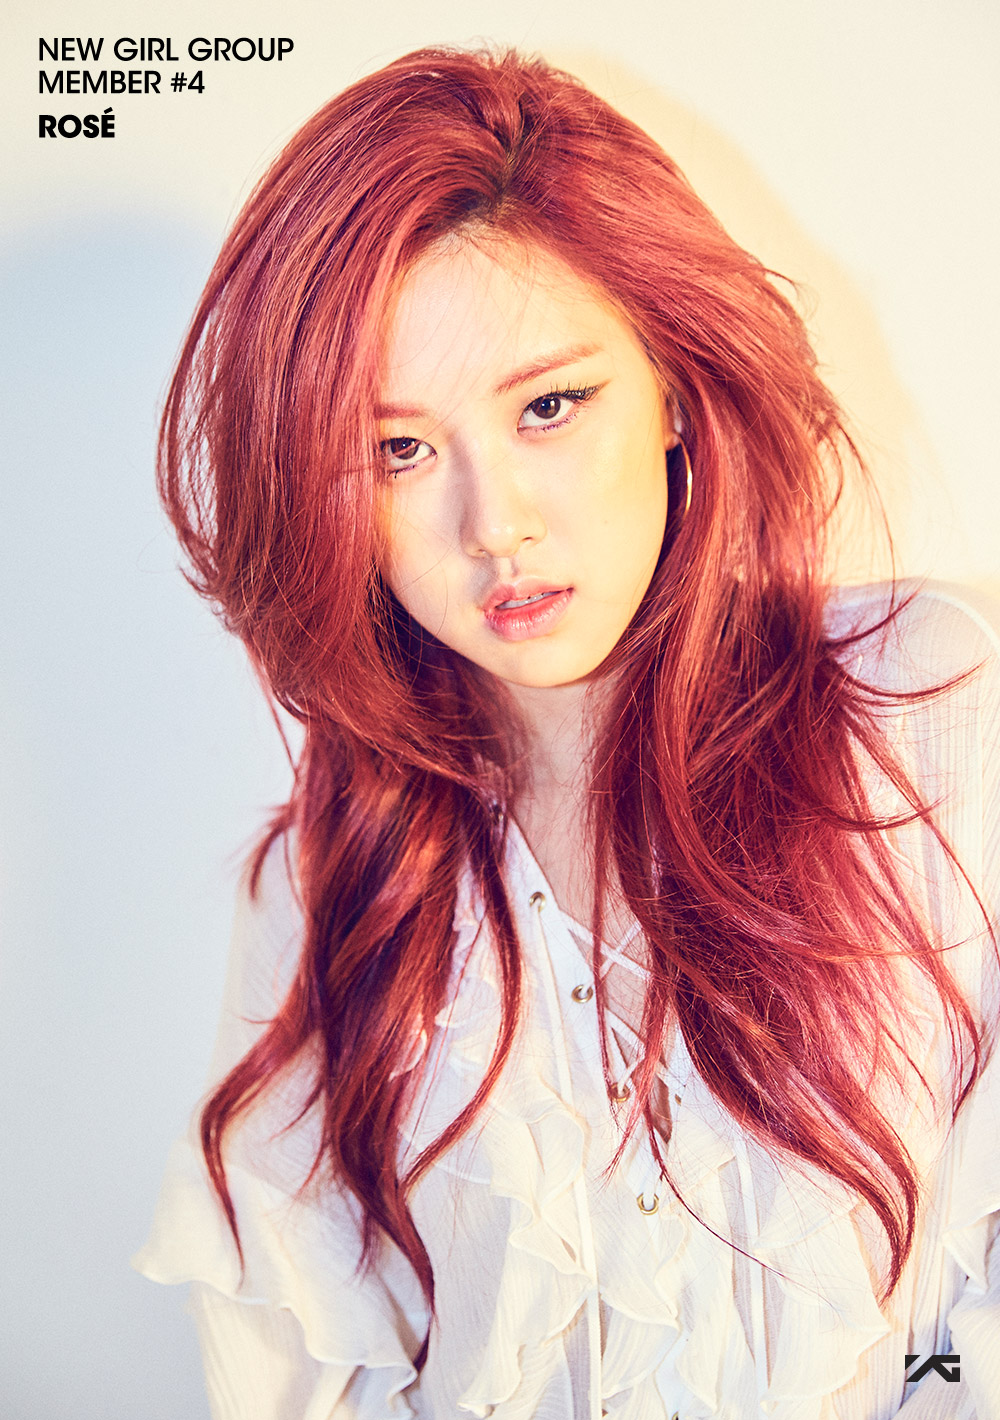 YG Reveals Teasers For New Girl Group Member Rosé